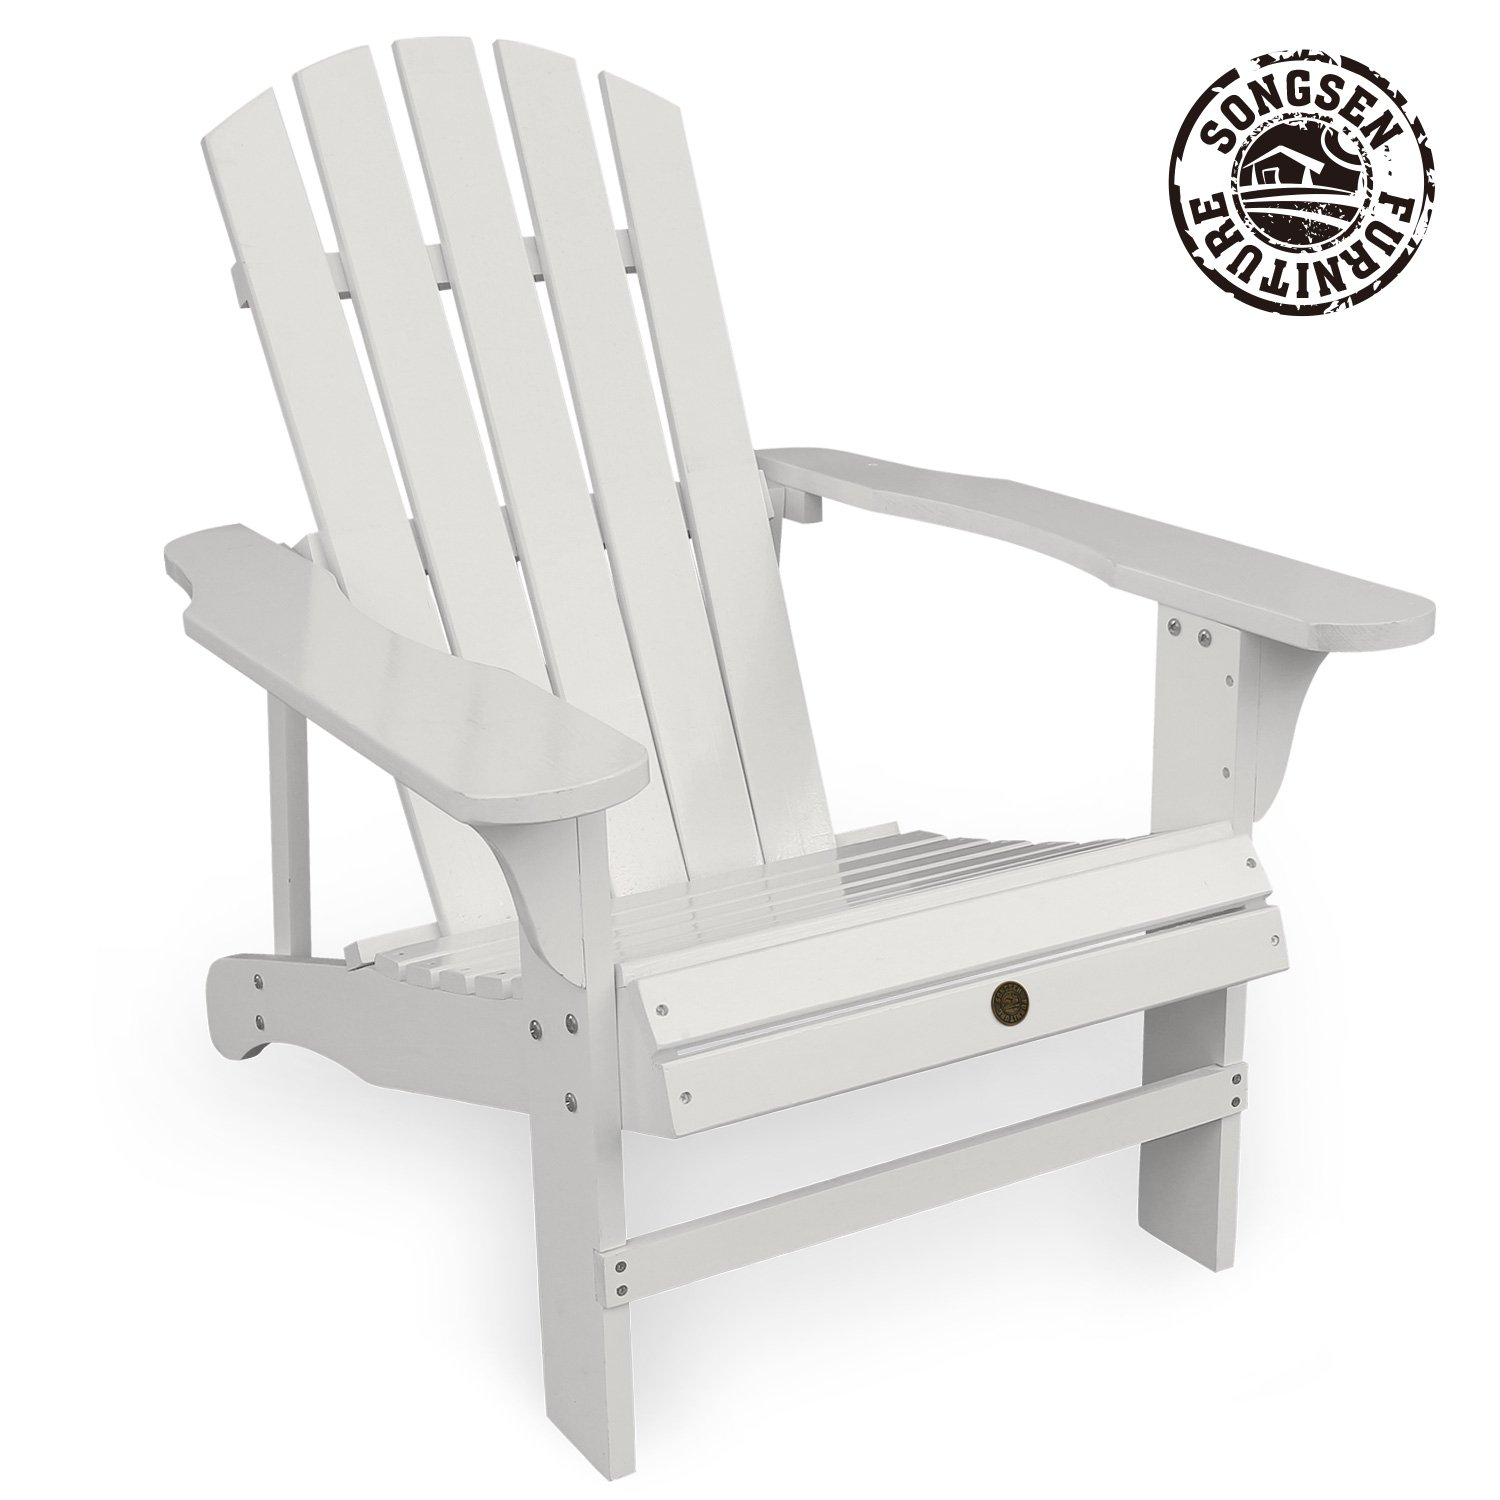 AZBRO Songsen Outdoor Wood Adirondack Chairs/Muskoka Chair Patio Deck Garden Furniture (Adult, White)